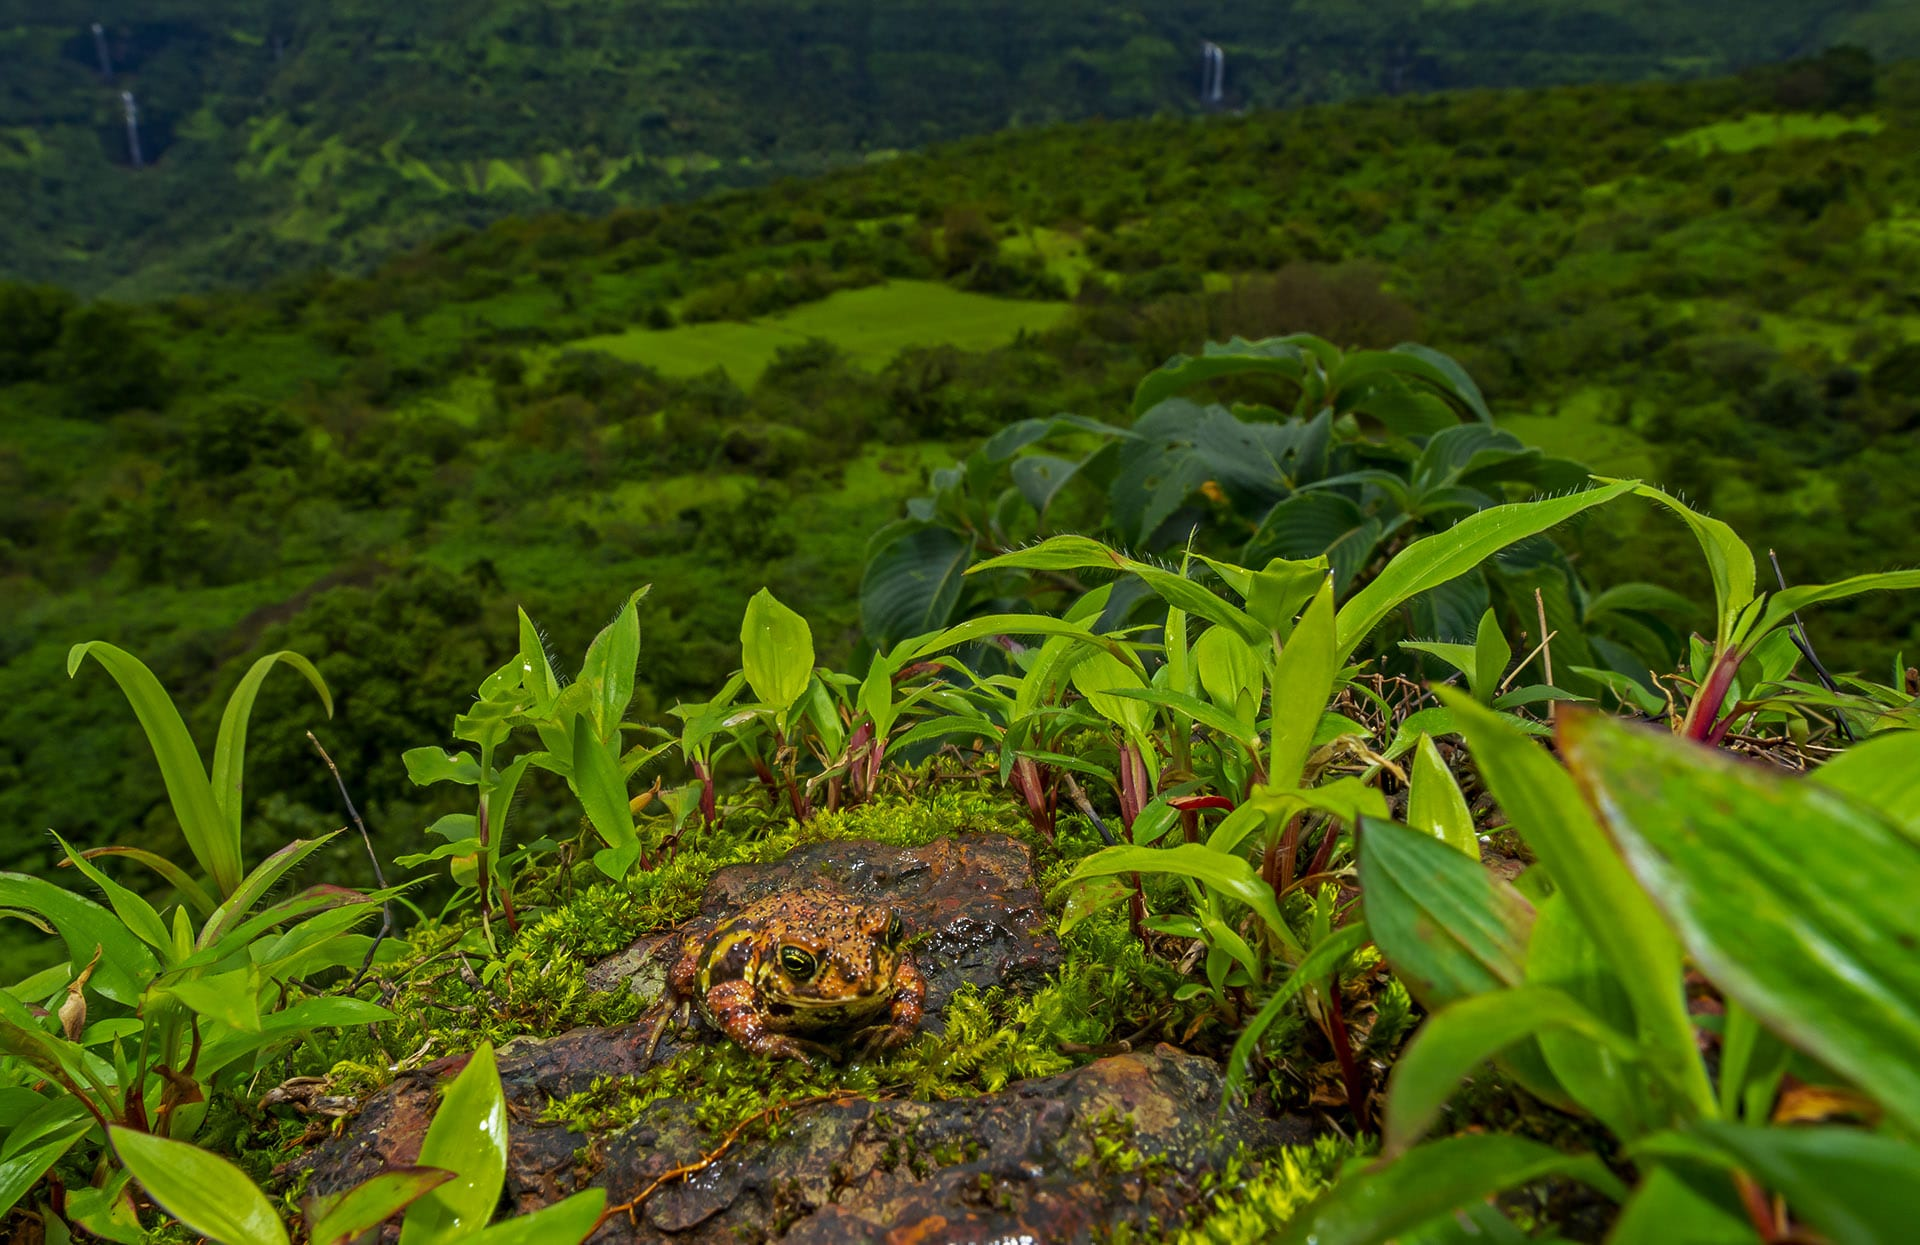 The exposed lateritic rocky outcrops in this landscape support a unique biodiversity. One amphibian which is confined to this habitat is the Amboli toad (Xanthophryne tigerina). During the early monsoon the Amboli toad is most commonly seen hopping around the habitat. Due to their restricted distribution and loss in the quality and extent of their habitat, this toad is considered as 'Critically Endangered' on the IUCN Red List for threatened species. Increasing anthropogenic pressure on this habitat is threatening to wipe out this king of the plateaus.